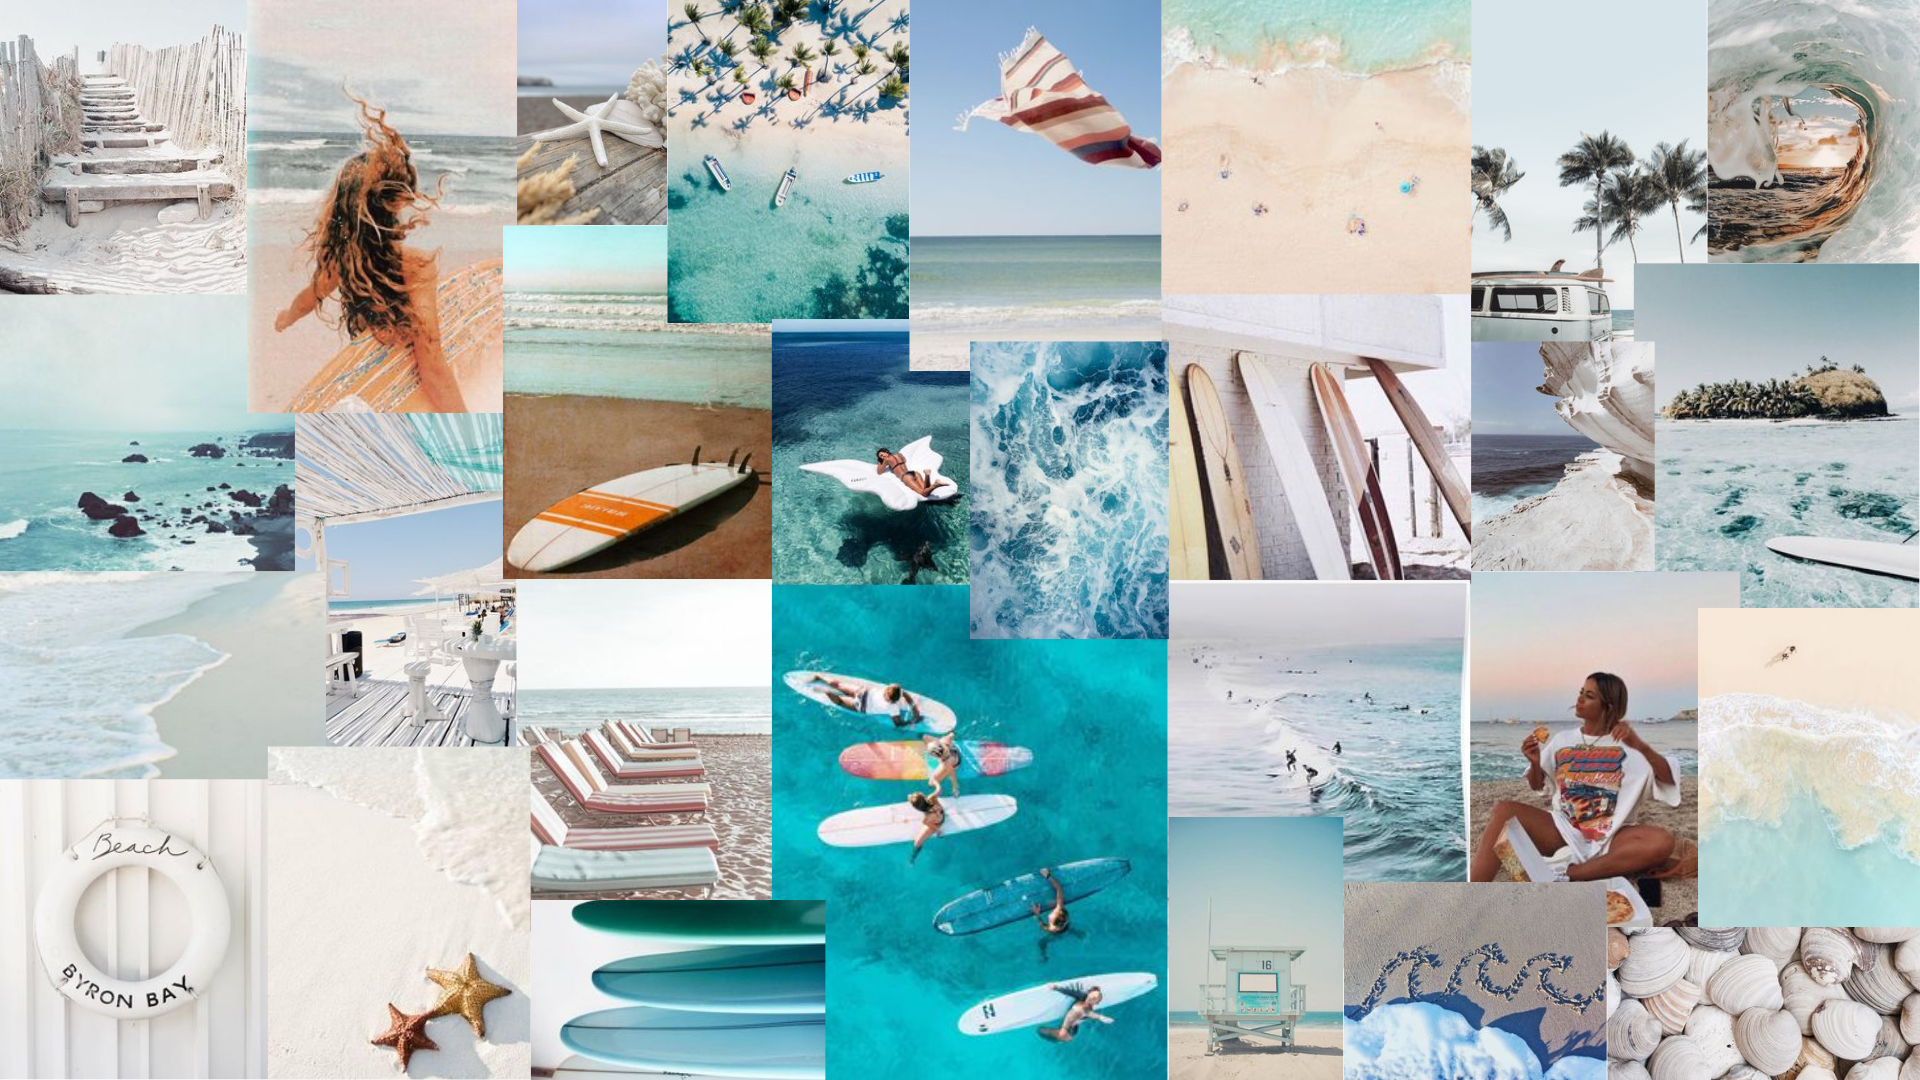 Blue And White Beach Aesthetic Pink Wallpaper Desktop Aesthetic Desktop Wallpaper Cute Desktop Wallpaper